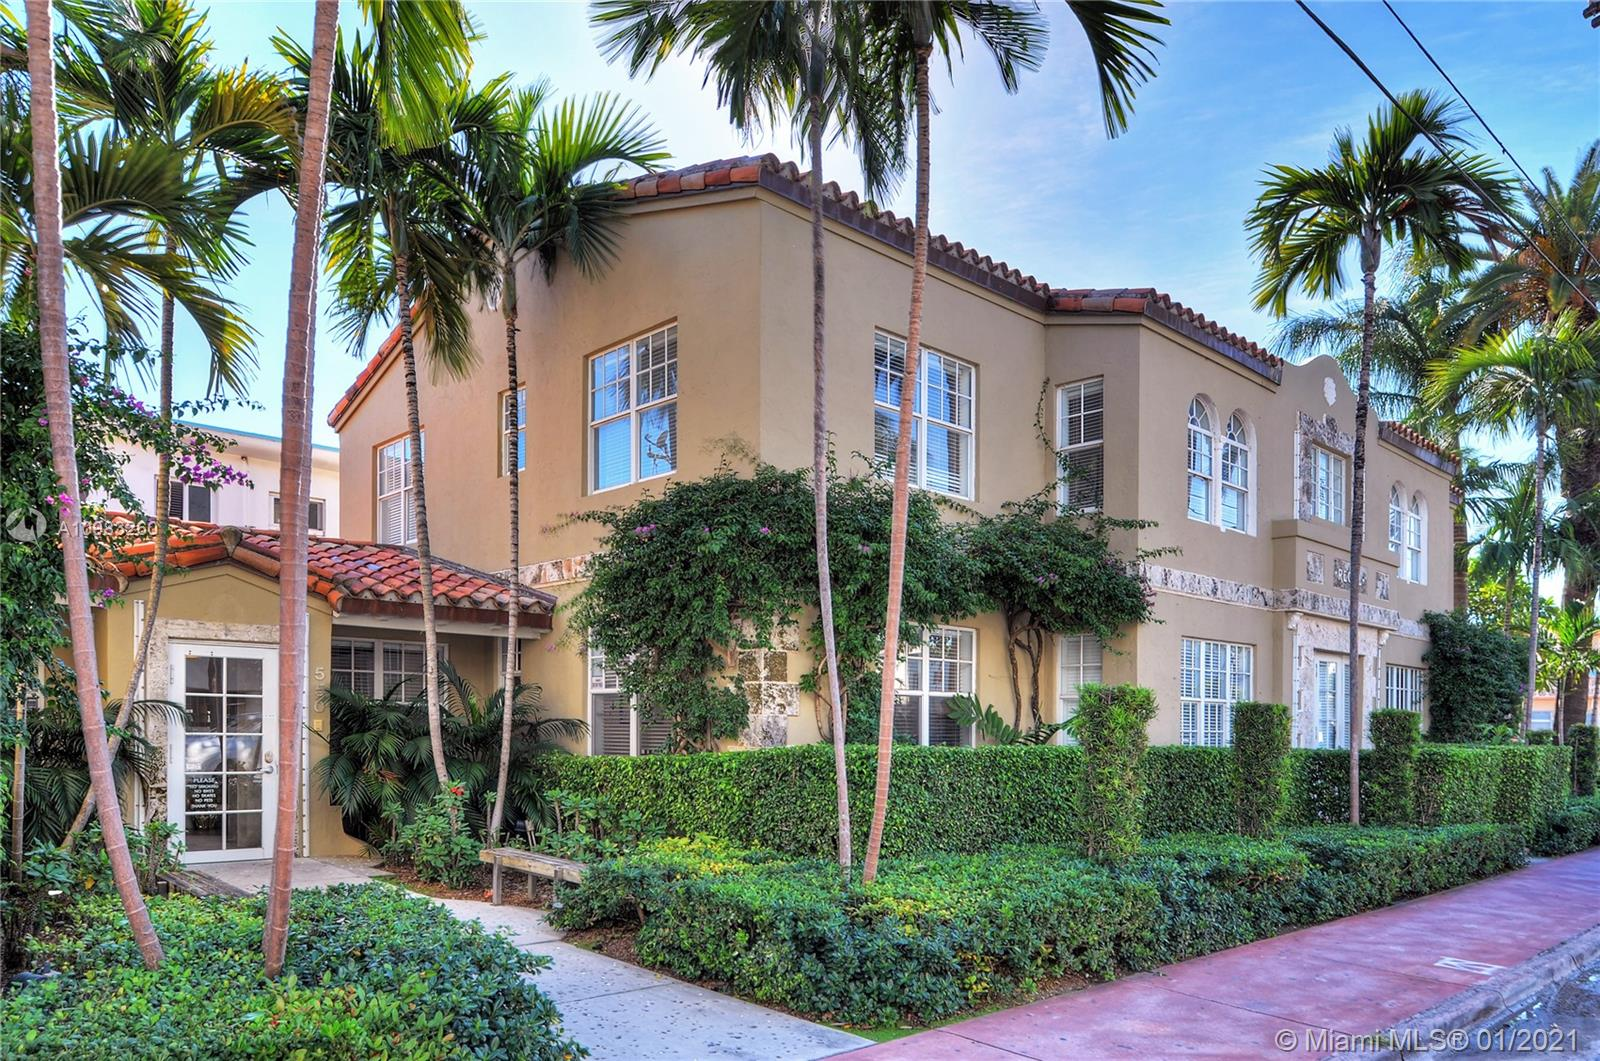 530-550 11th St Luxury Real Estate